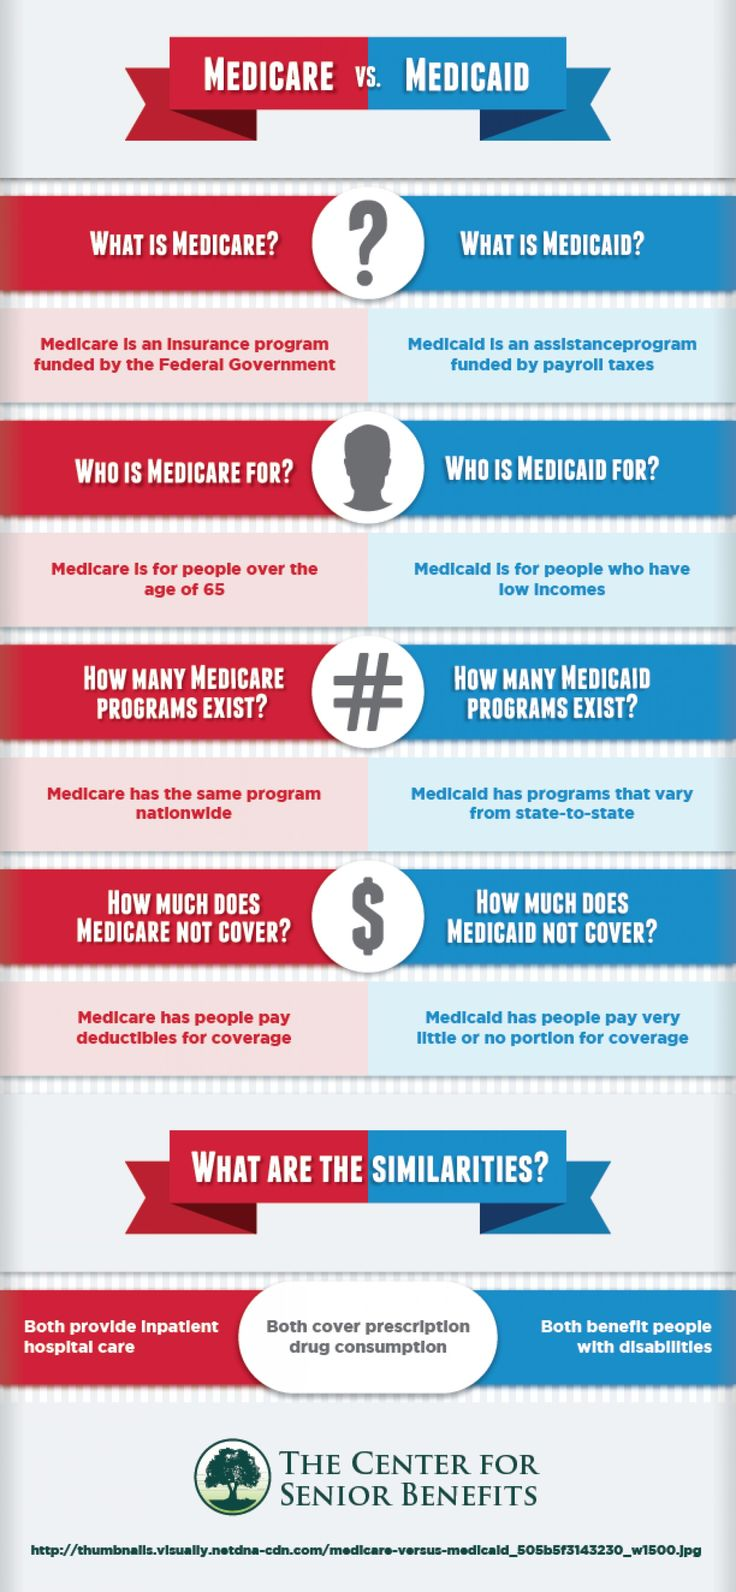 Medicare VS. Medicaid --shared by Fusion360 on Jul 21, 2014 -- See more at: http://visual.ly/medicare-vs-medicaid#sthash.jQiLTBqF.dpuf